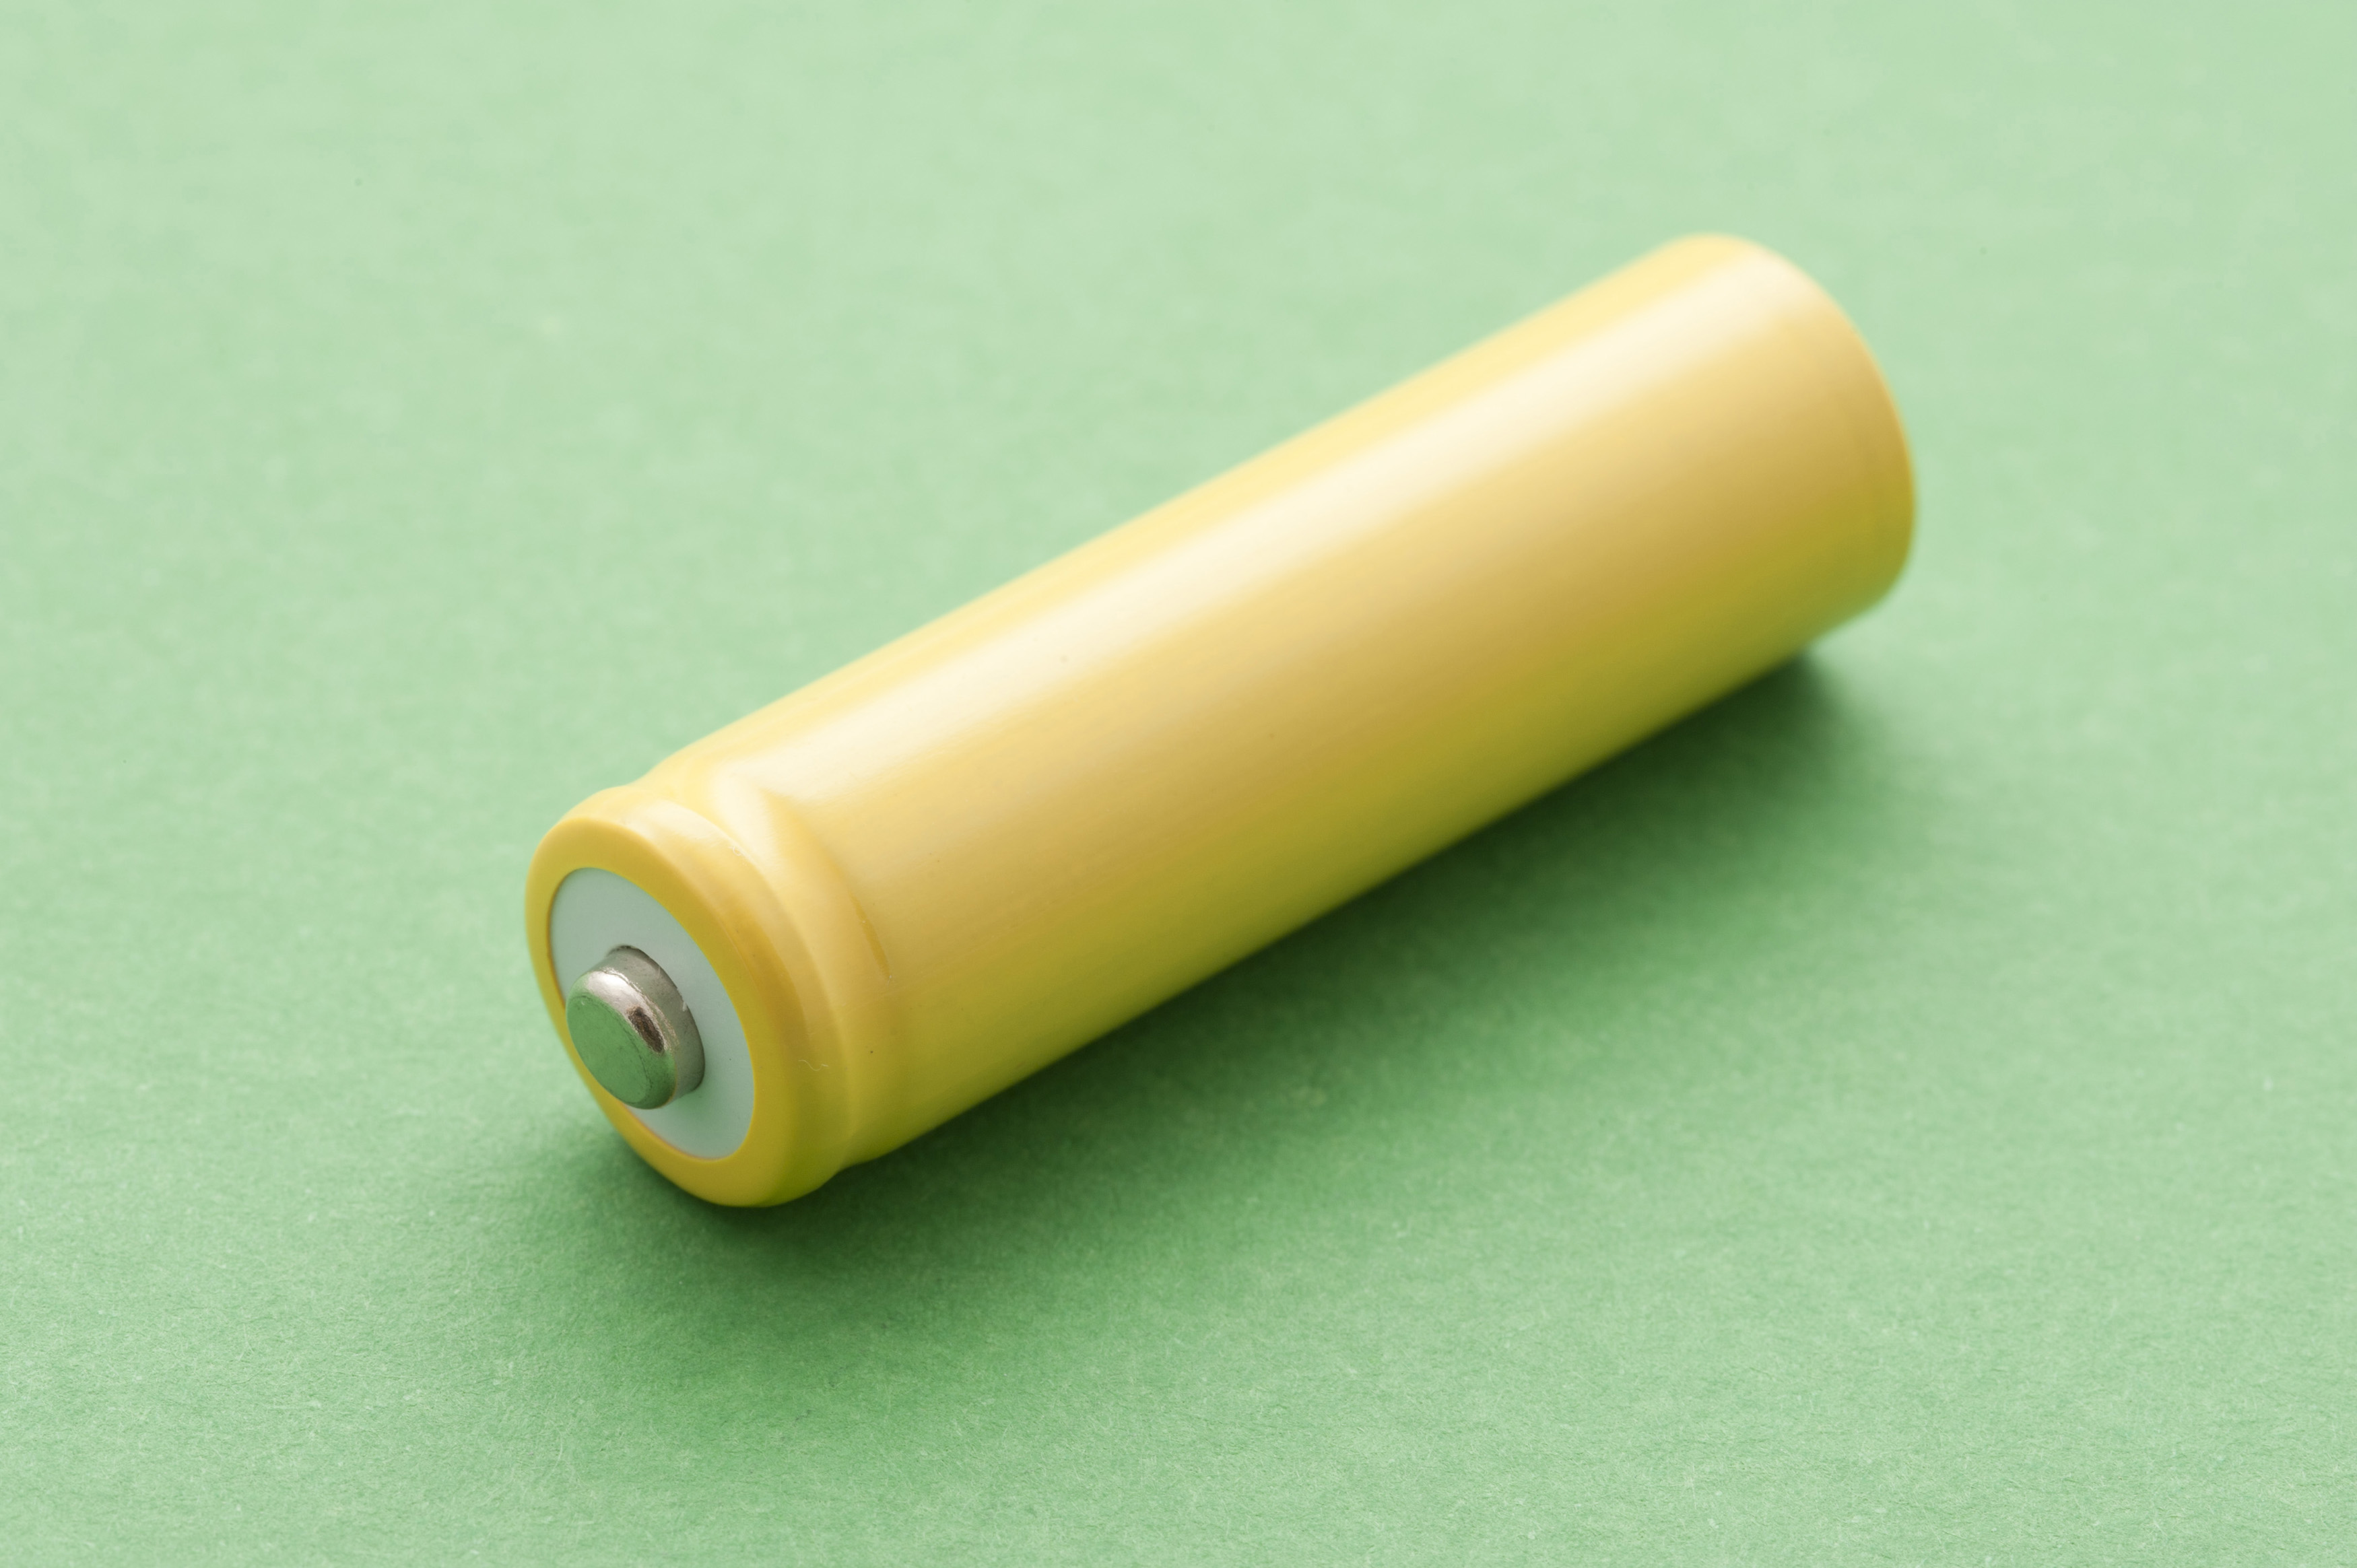 Single yellow unlabelled battery lying diagonally on a green background used to generate electricity from chemical energy